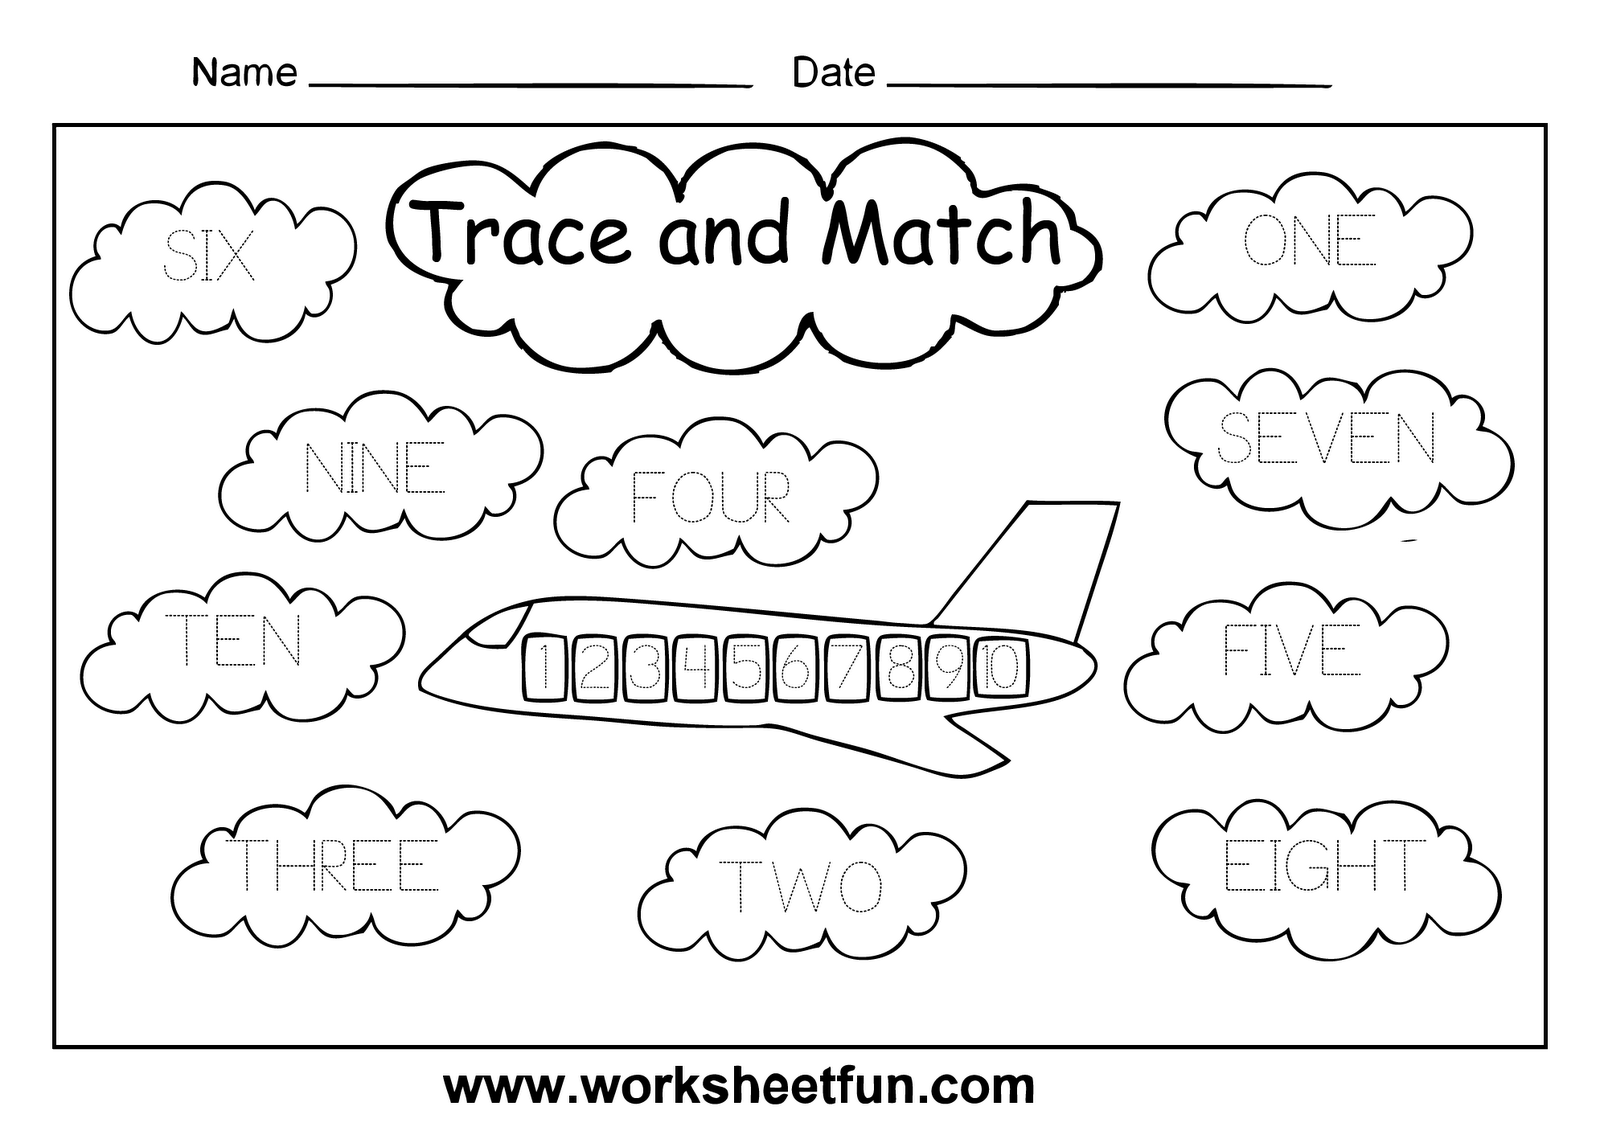 Proatmealus  Scenic Numbers Worksheet    Narrativamente With Fetching Critical Thinking Worksheets For High School Besides Beginner Fraction Worksheets Furthermore Adverb Worksheets Th Grade With Cool Measuring And Drawing Angles Worksheet Also Move Worksheet To Another Workbook In Addition Math Clock Worksheets And Color Word Worksheets For Kindergarten As Well As Sphere Volume Worksheet Additionally Th Grade Math Practice Test Worksheets From Narrativamentecom With Proatmealus  Fetching Numbers Worksheet    Narrativamente With Cool Critical Thinking Worksheets For High School Besides Beginner Fraction Worksheets Furthermore Adverb Worksheets Th Grade And Scenic Measuring And Drawing Angles Worksheet Also Move Worksheet To Another Workbook In Addition Math Clock Worksheets From Narrativamentecom